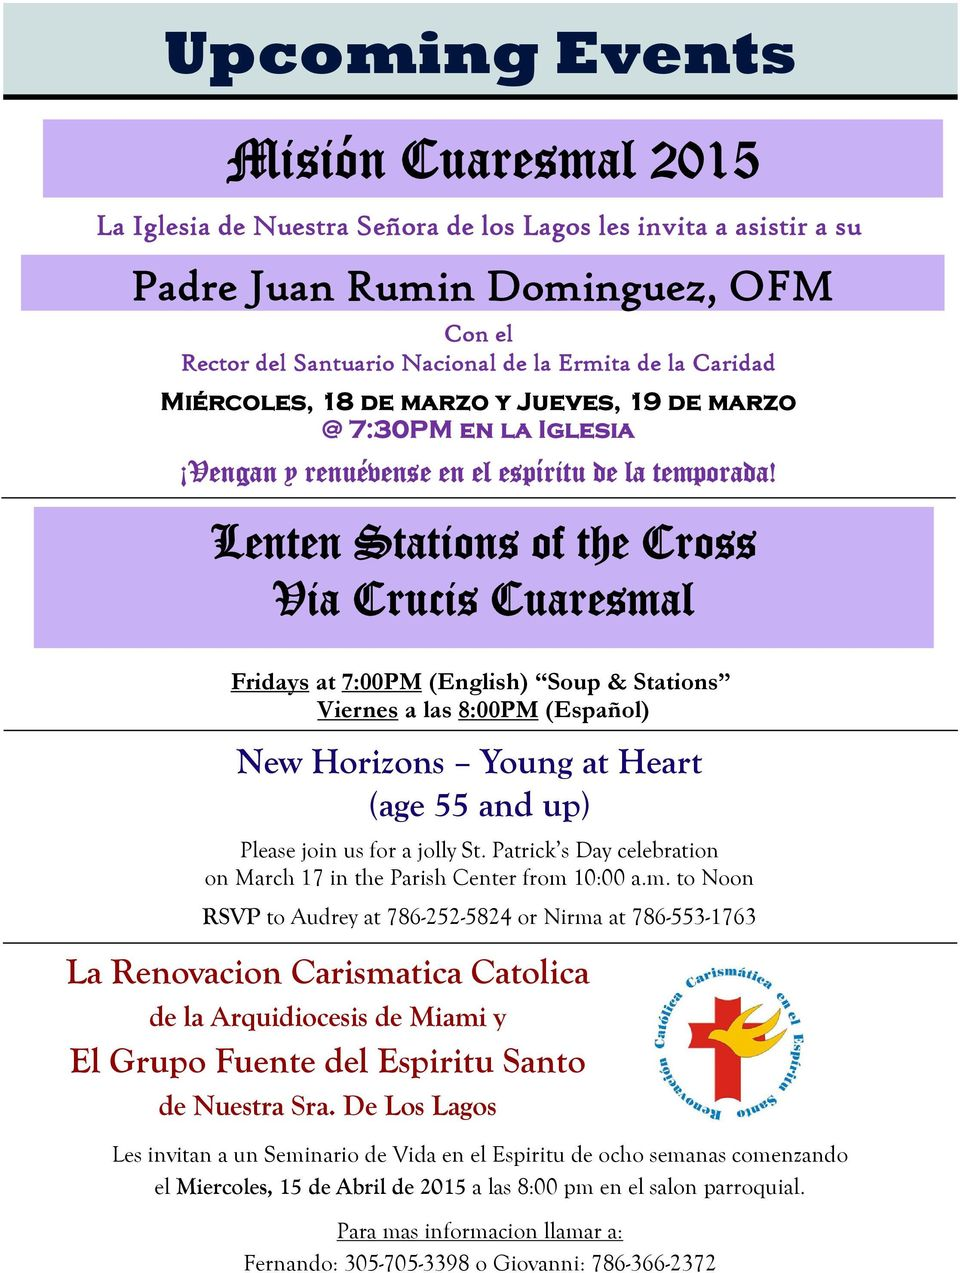 Lenten Stations of the Cross Via Crucis Cuaresmal Fridays at 7:00PM (English) Soup & Stations Viernes a las 8:00PM (Español) New Horizons Young at Heart (age 55 and up) Please join us for a jolly St.